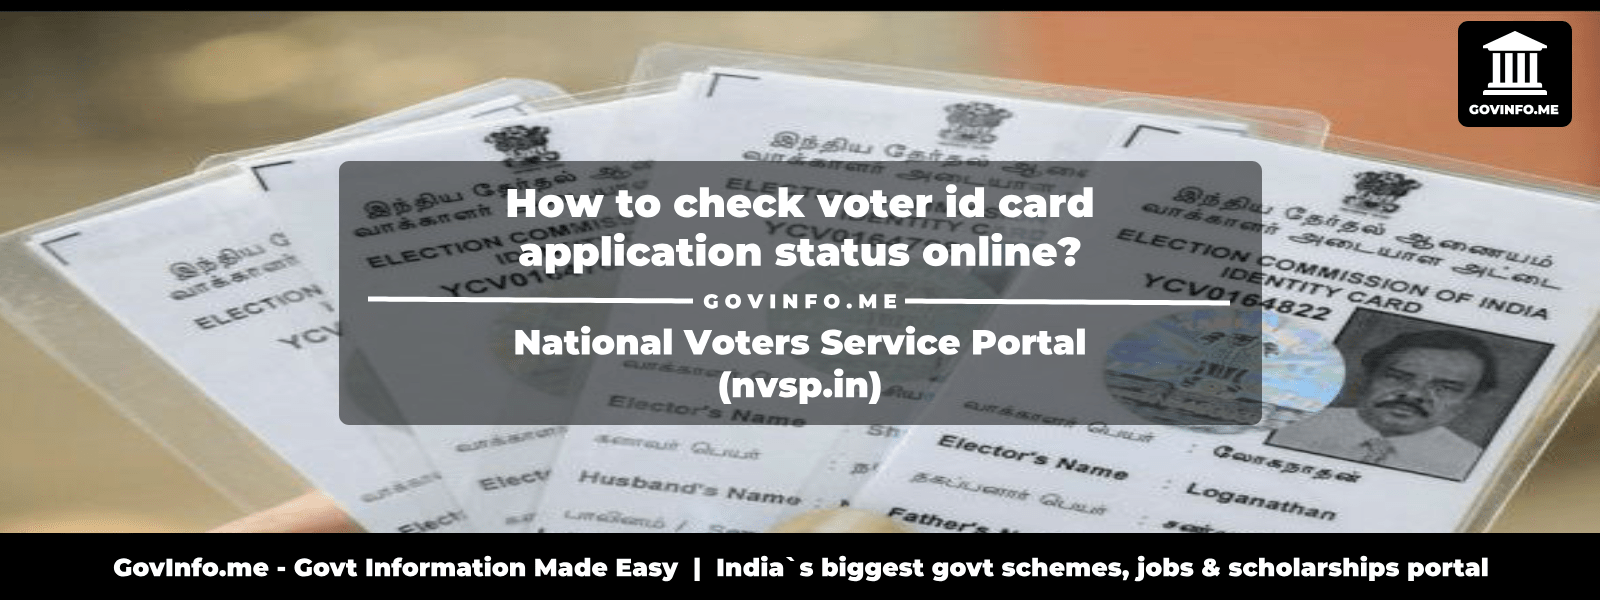 online application status for voter id card